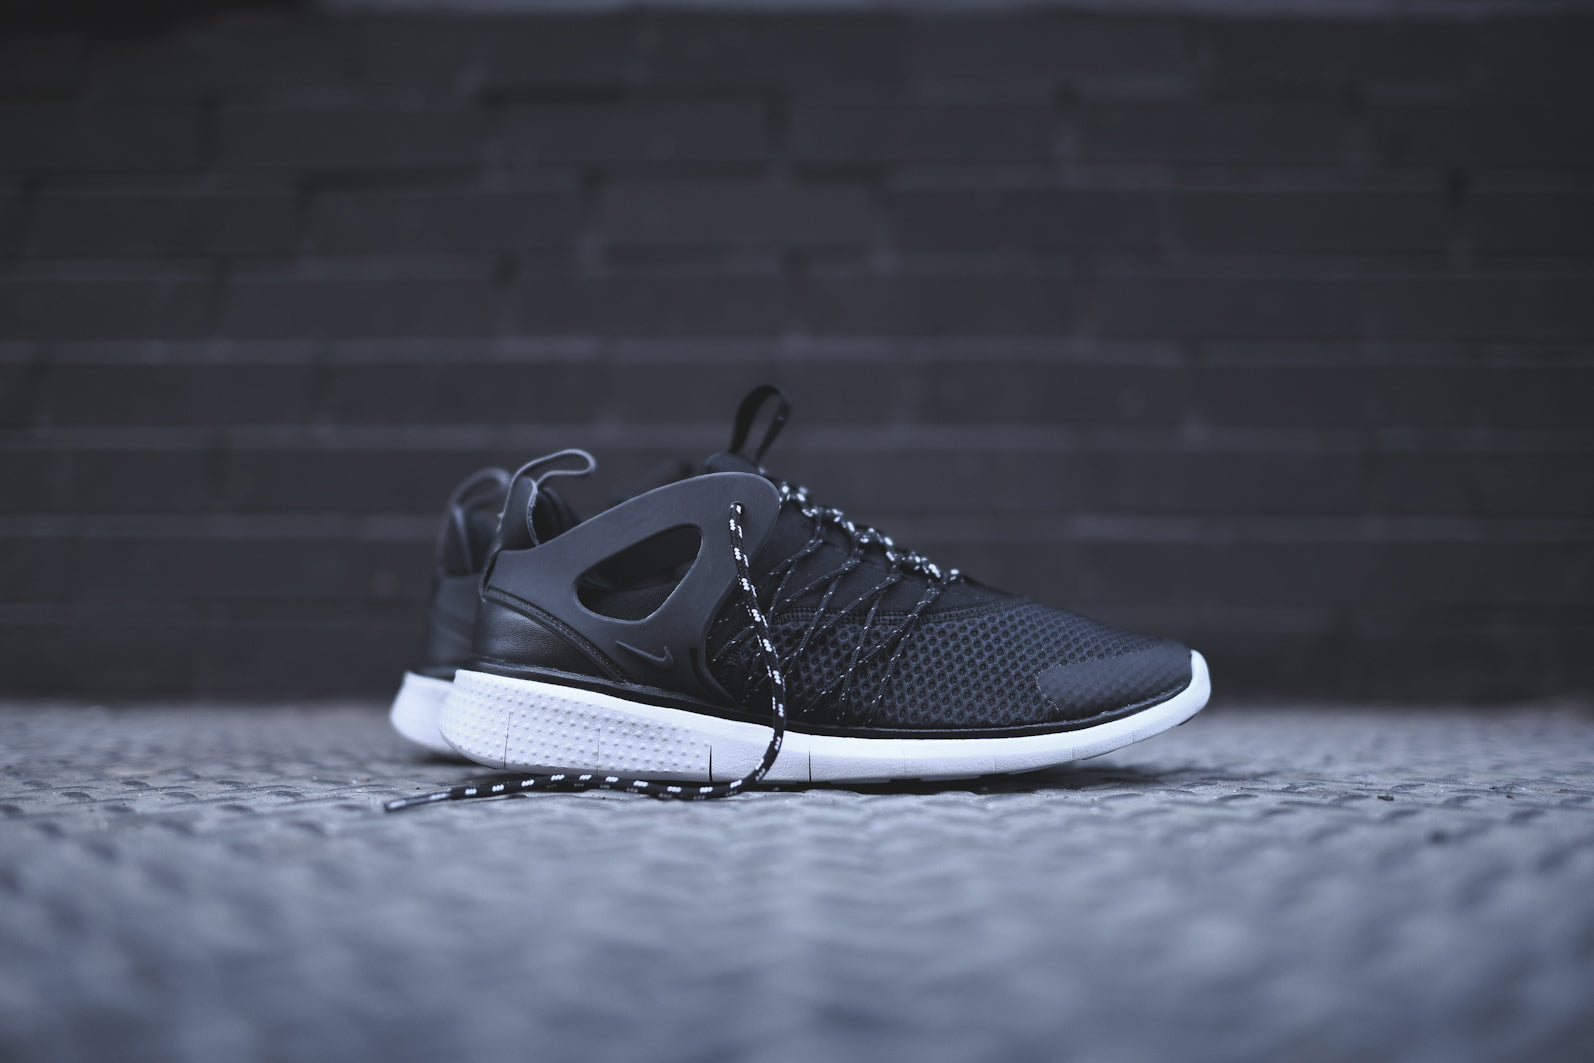 ff842c6e097 The Nike WMNS Free Viritous - Black   Cool Grey is available now for email  orders at KITH Manhattan and KITH Brooklyn.